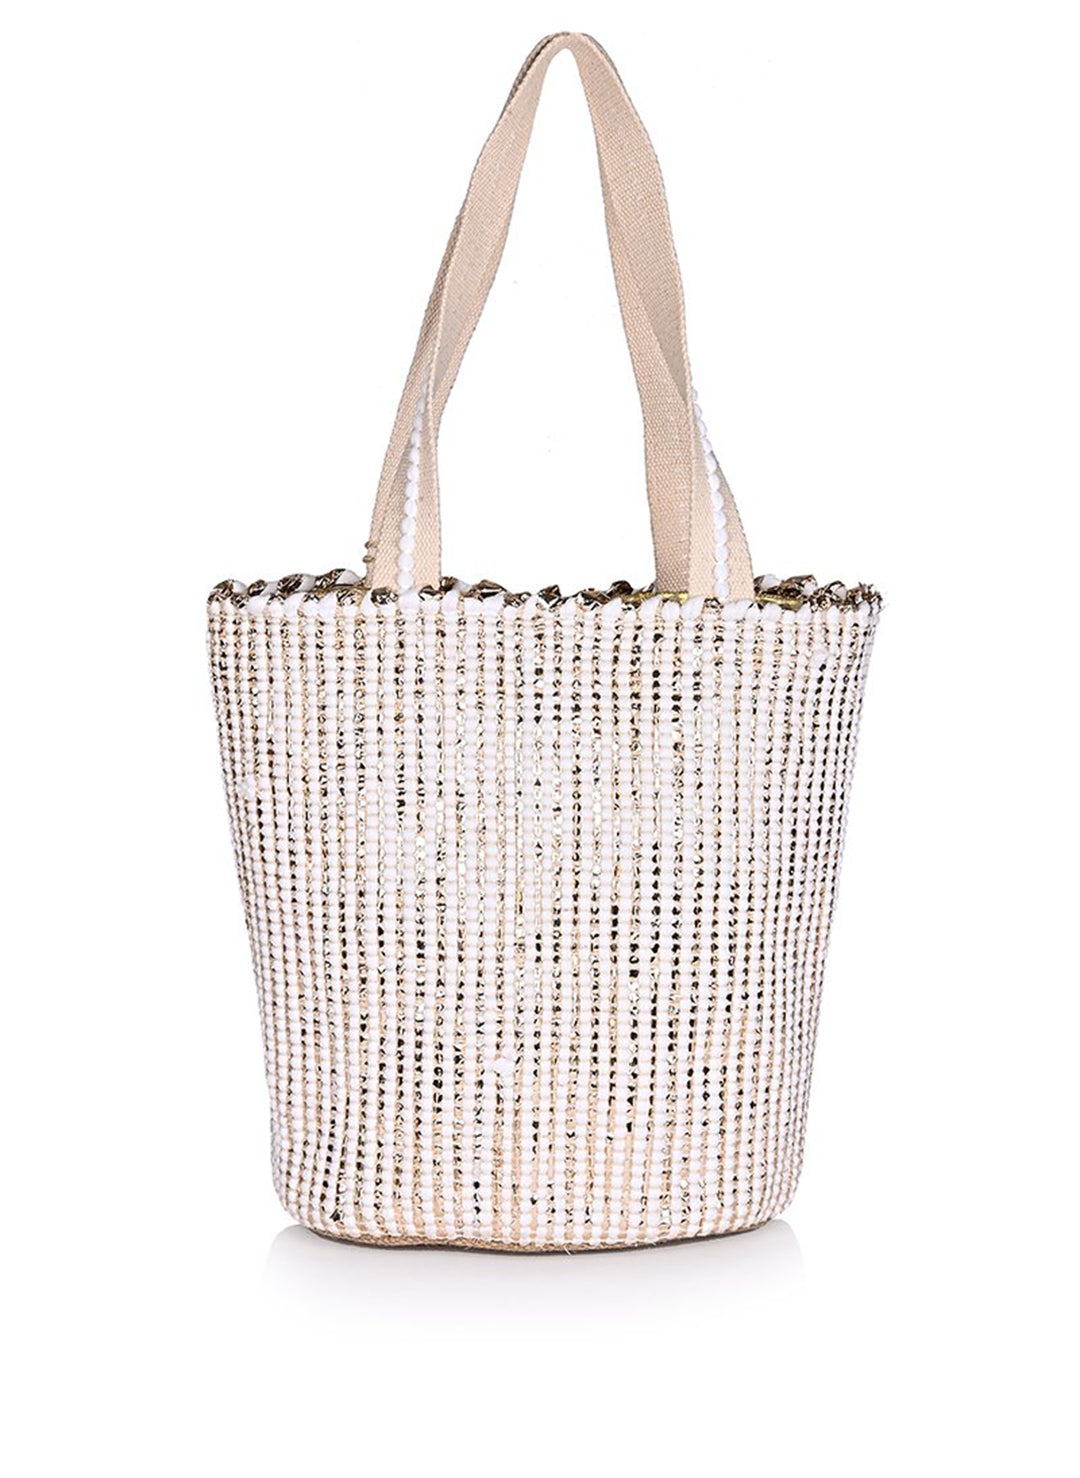 Natural Beauty Market Tote